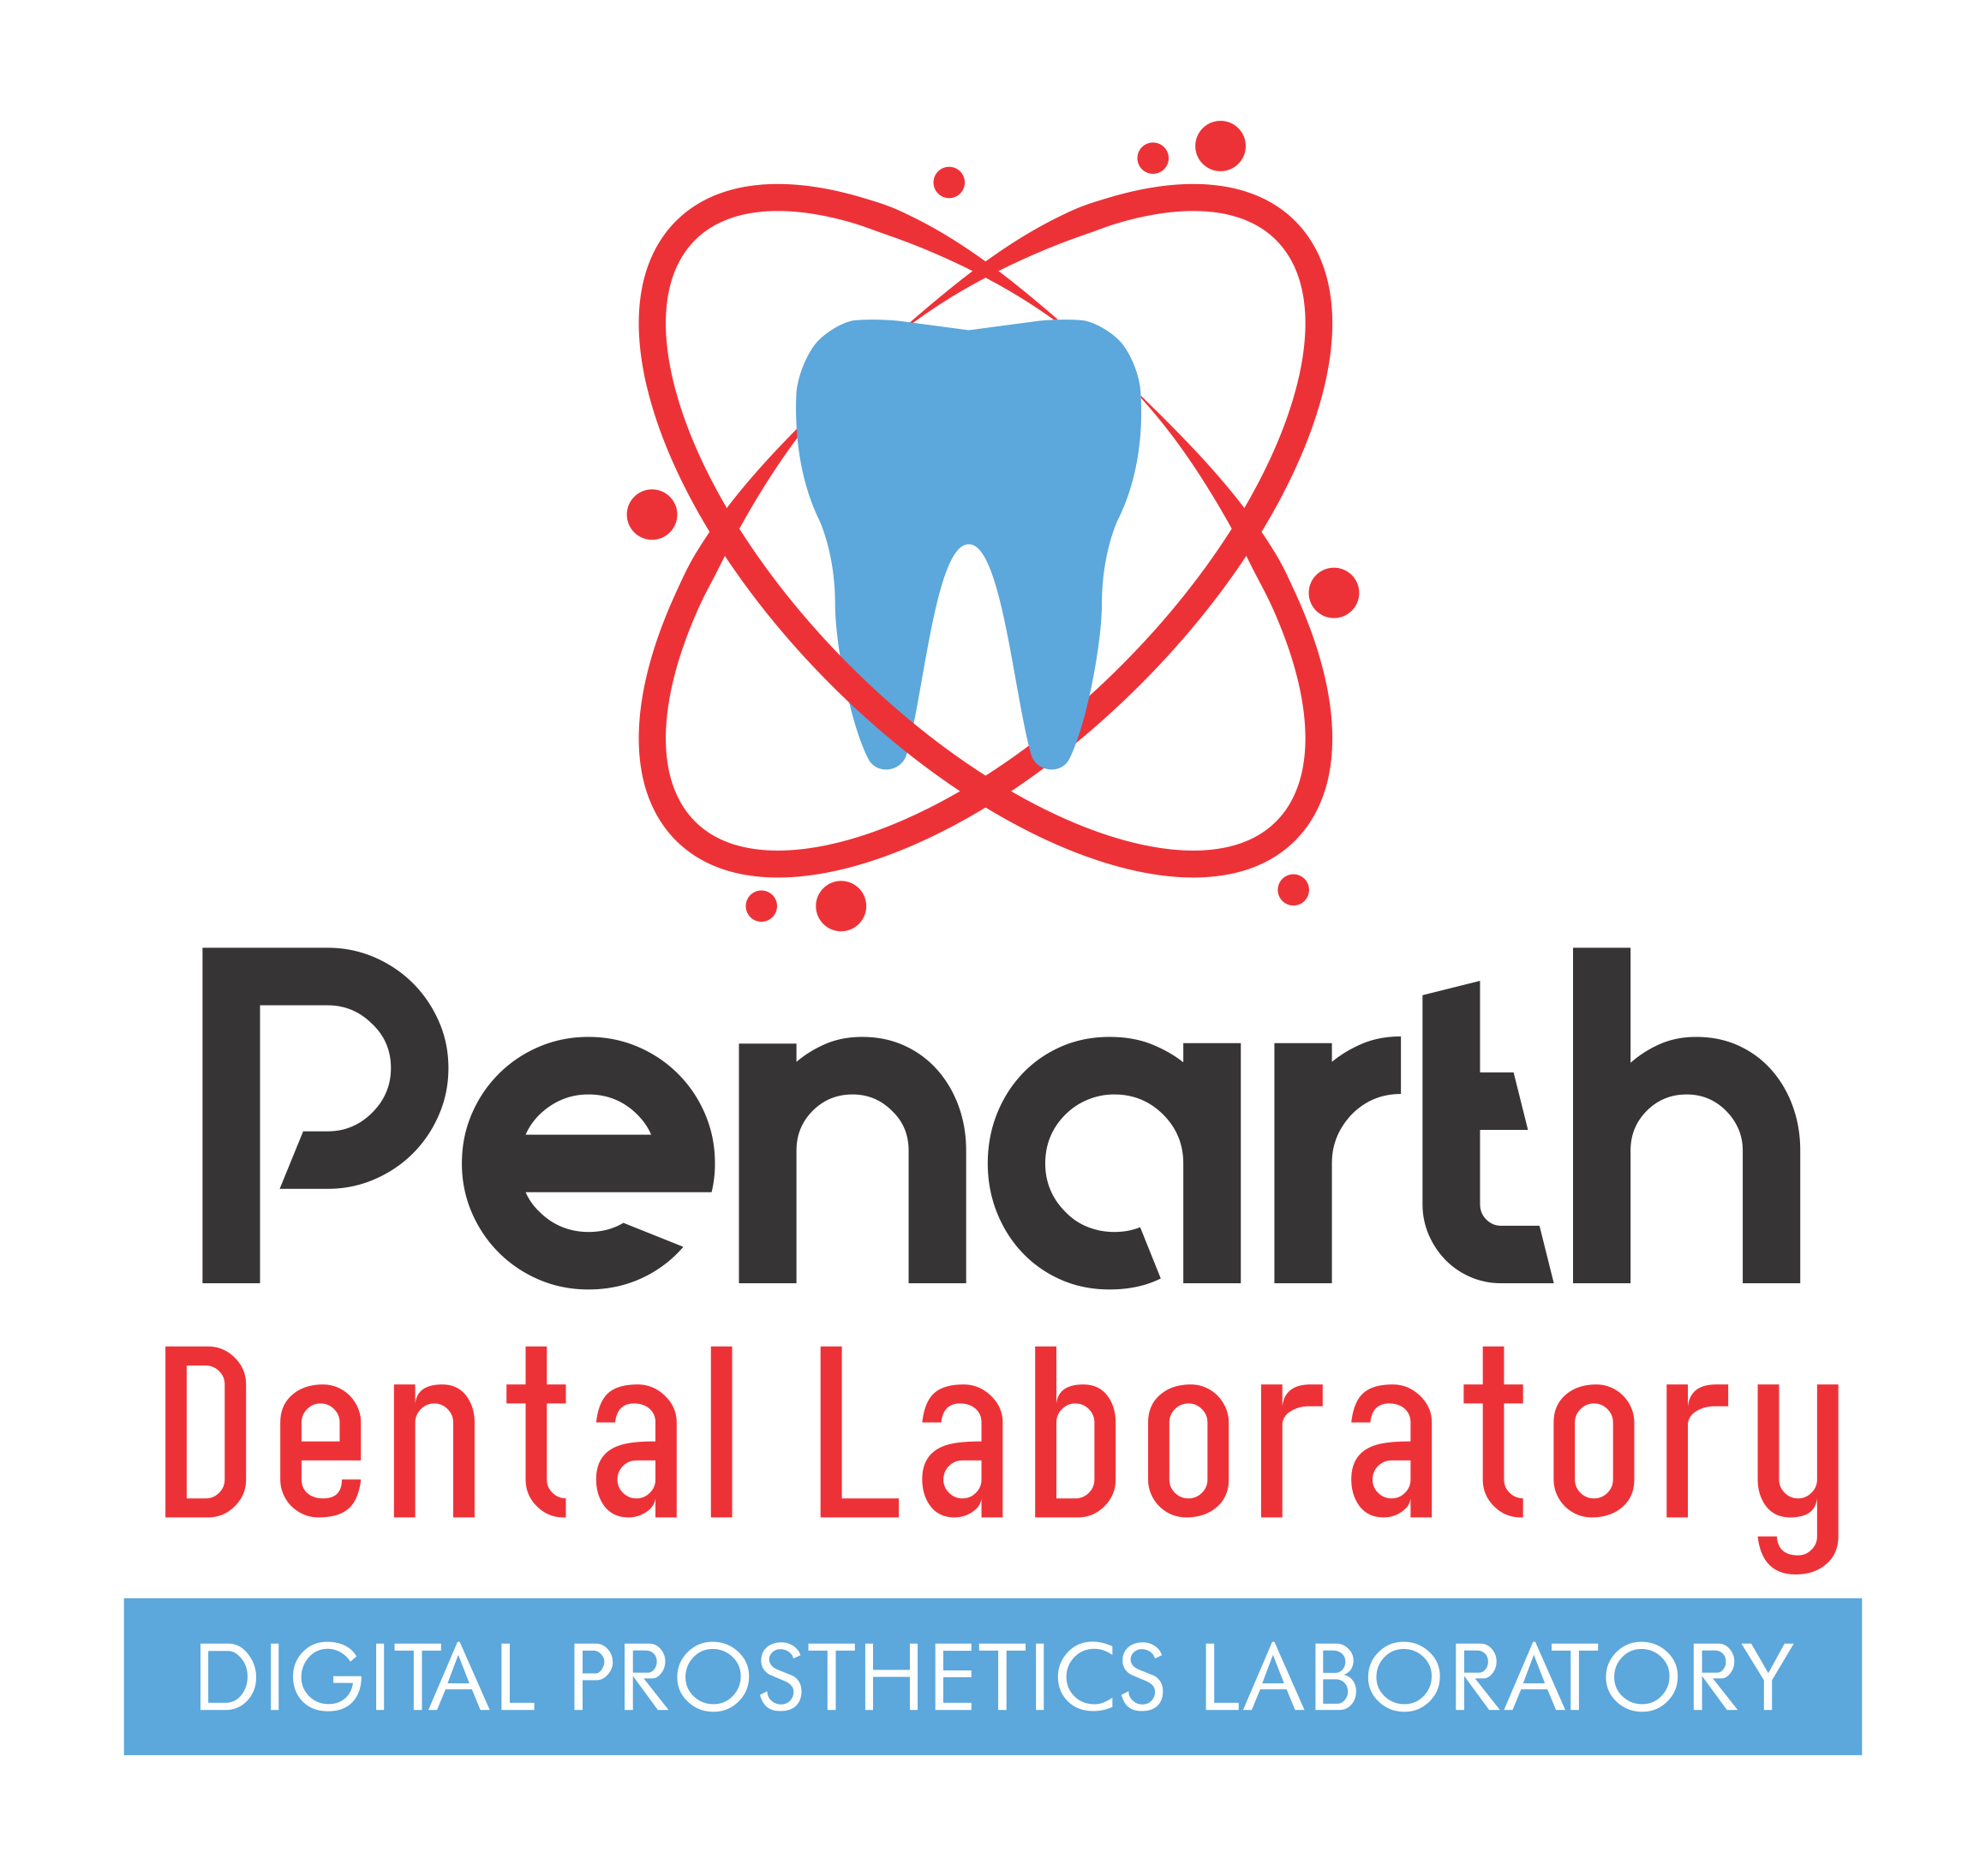 Penarth Dental Laboratory